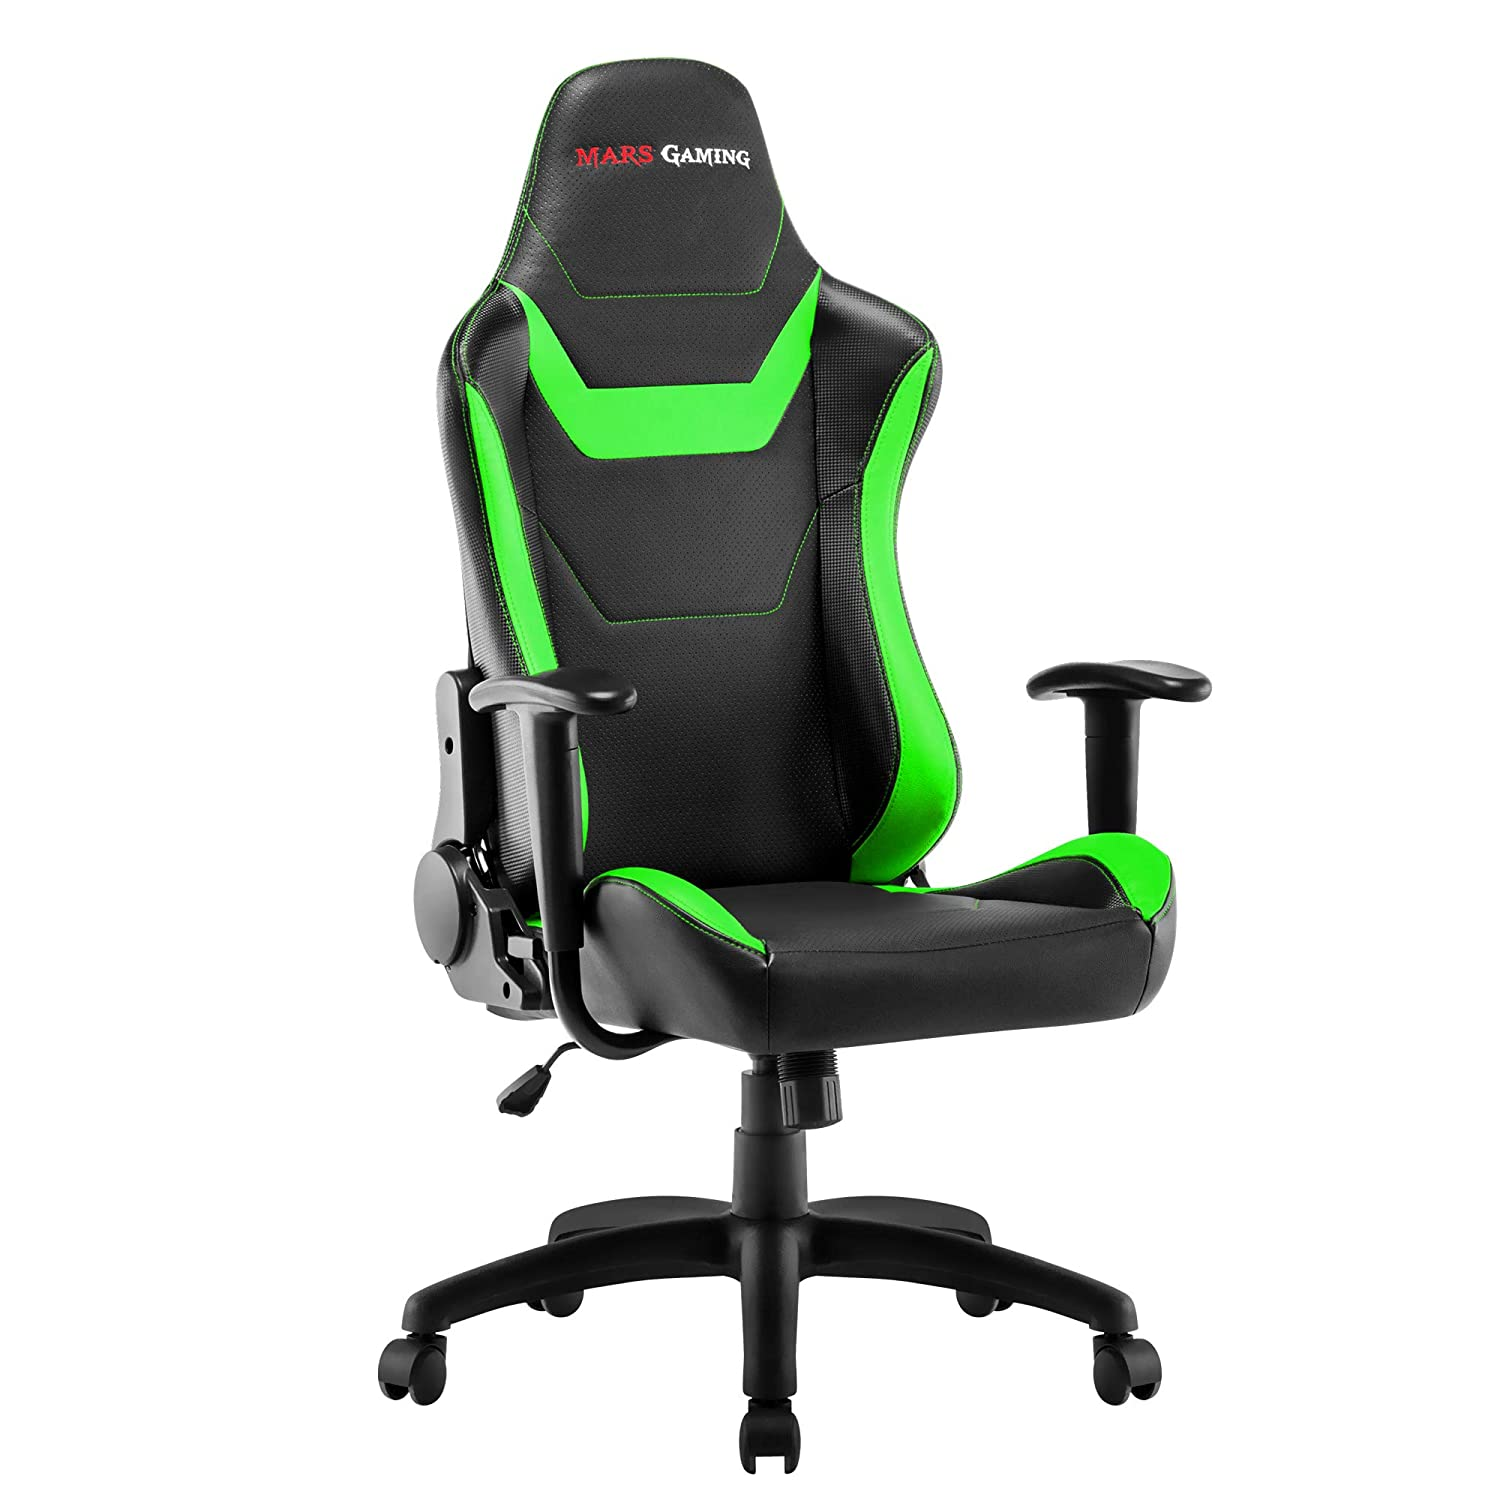 Mars Gaming MGC218 - Silla profesional, tecnología AIR, reclinable 180°, verde: Amazon.es: Hogar